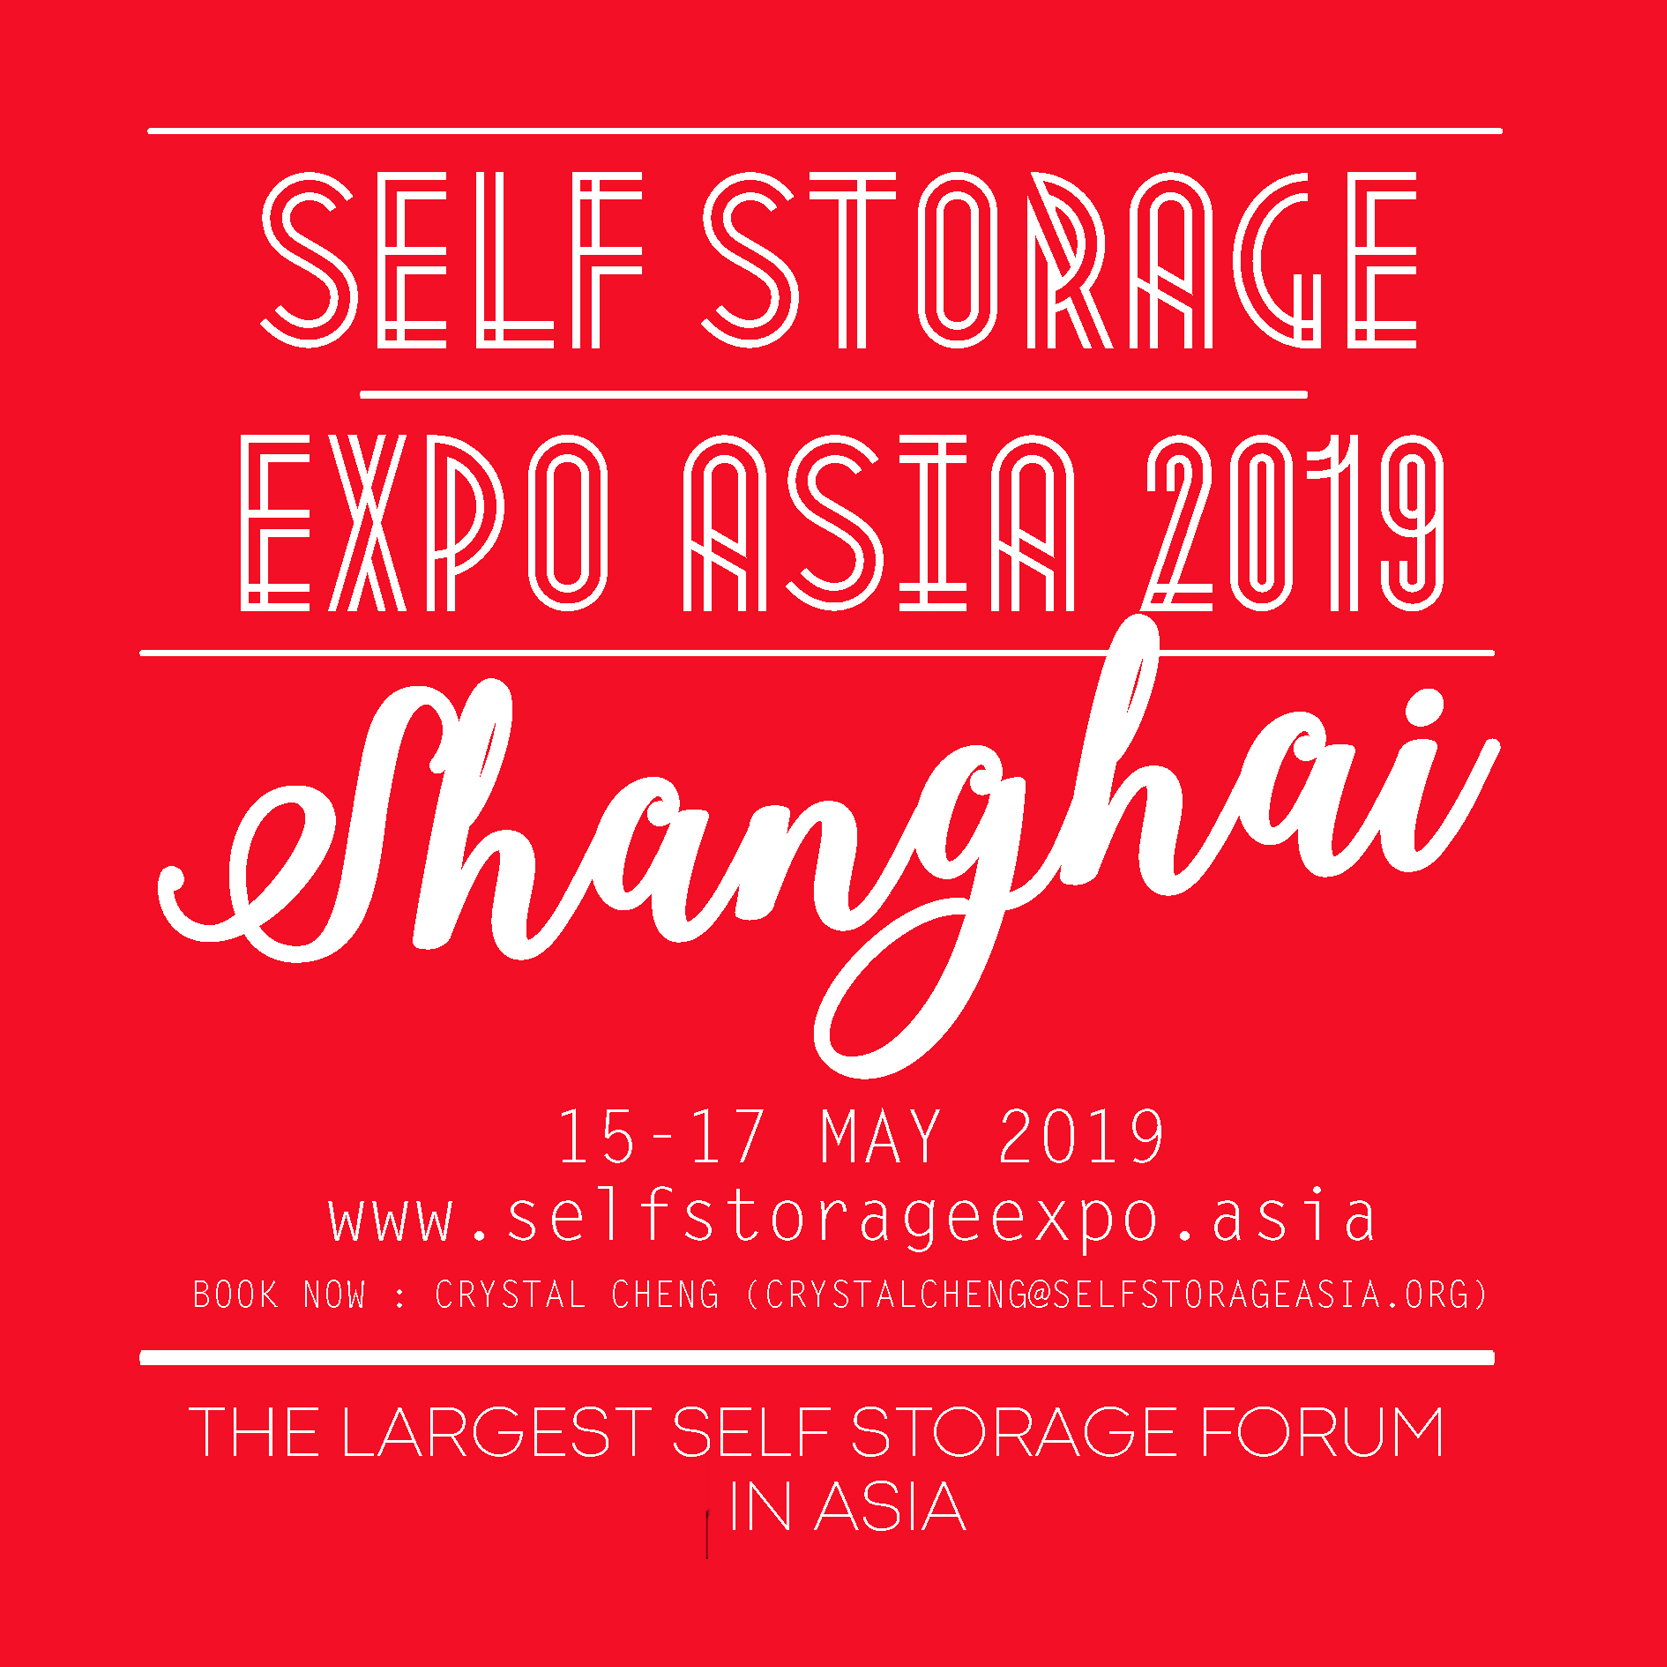 May 15-17 Shanghai - Self Storage Expo Asia 2019